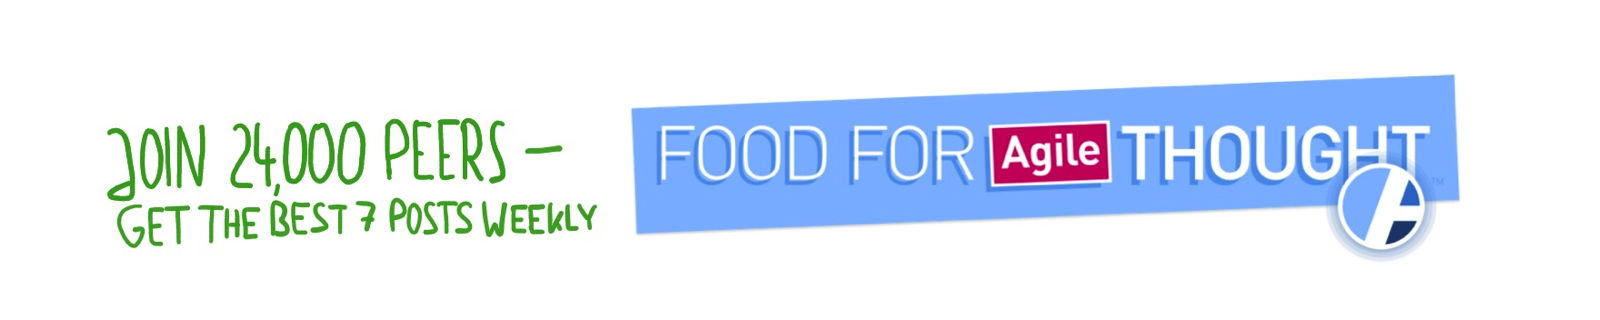 Join 24,000 Peers and subscribe to the weekly Food for Agile Thought newsletter